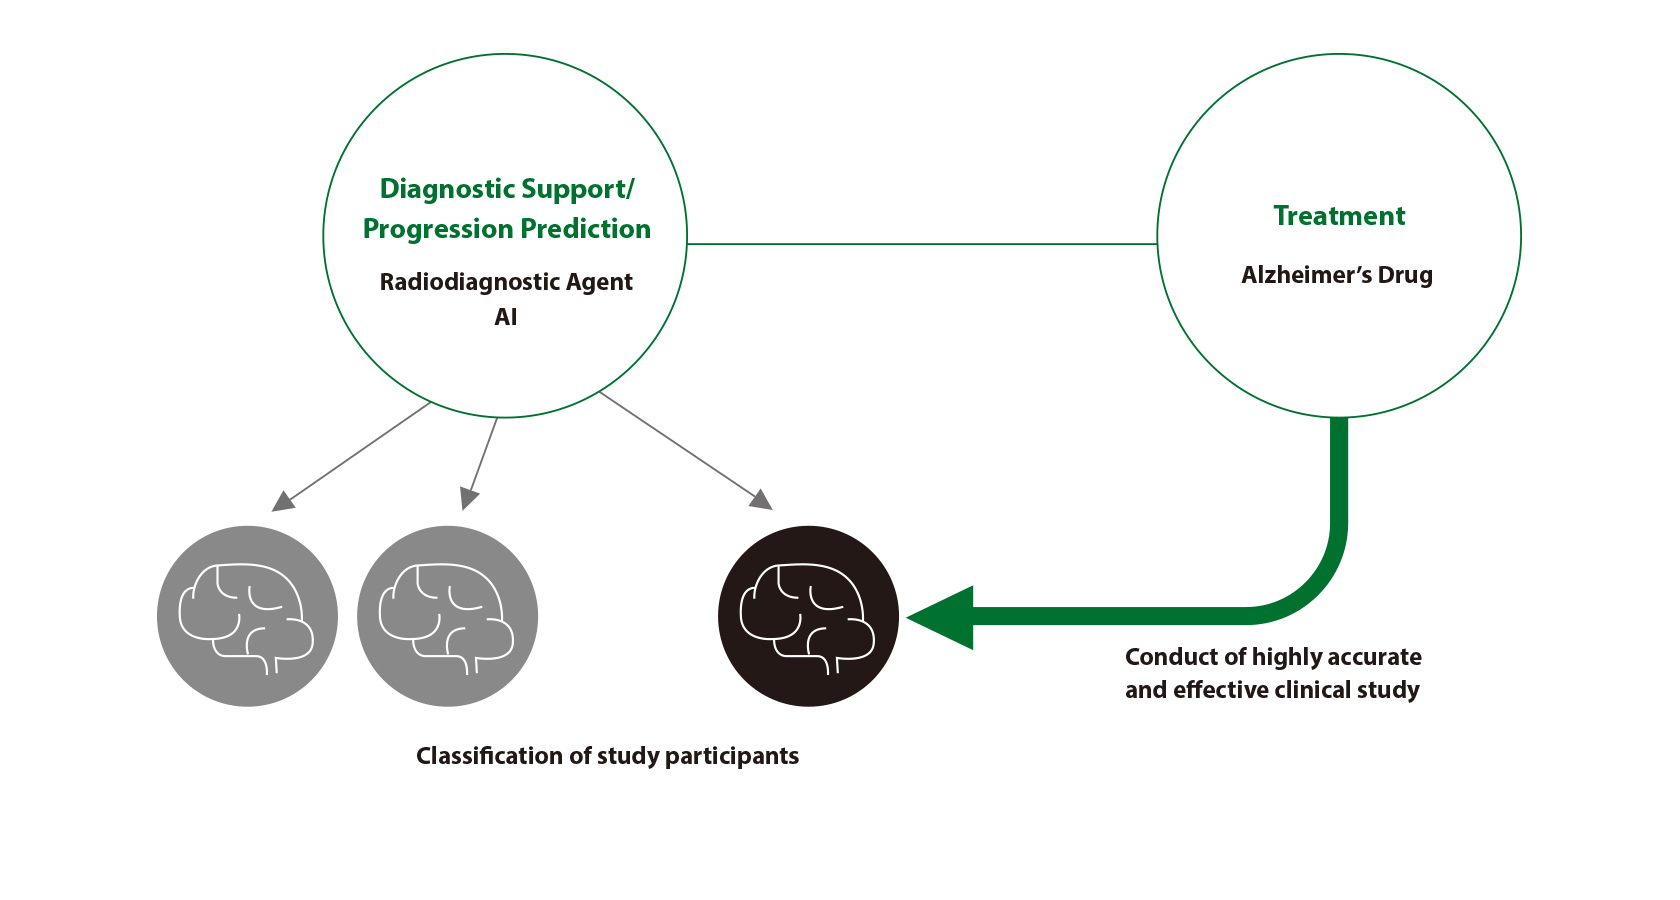 [image] Diagnostic Support and Treatment combining to promote success of drug development